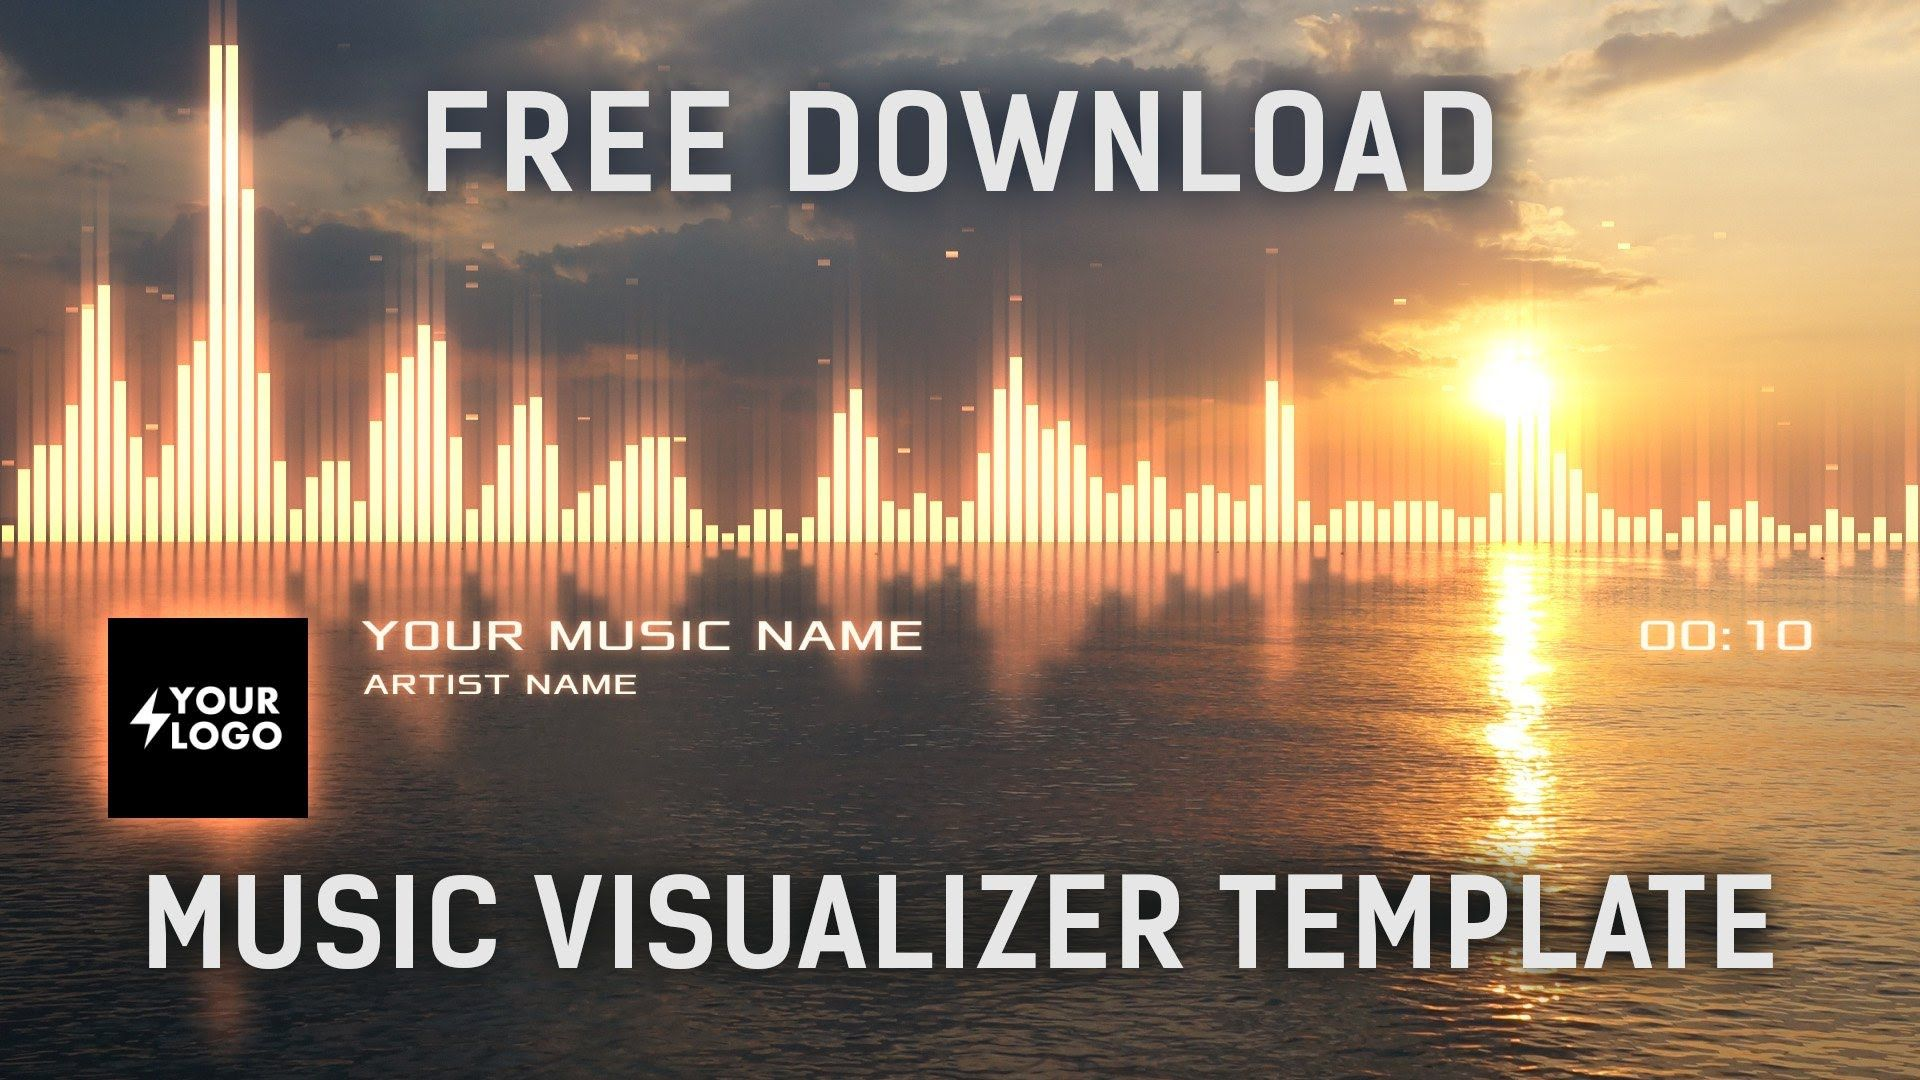 Audio Spectrum Music Visualizer After Effects Template [Free